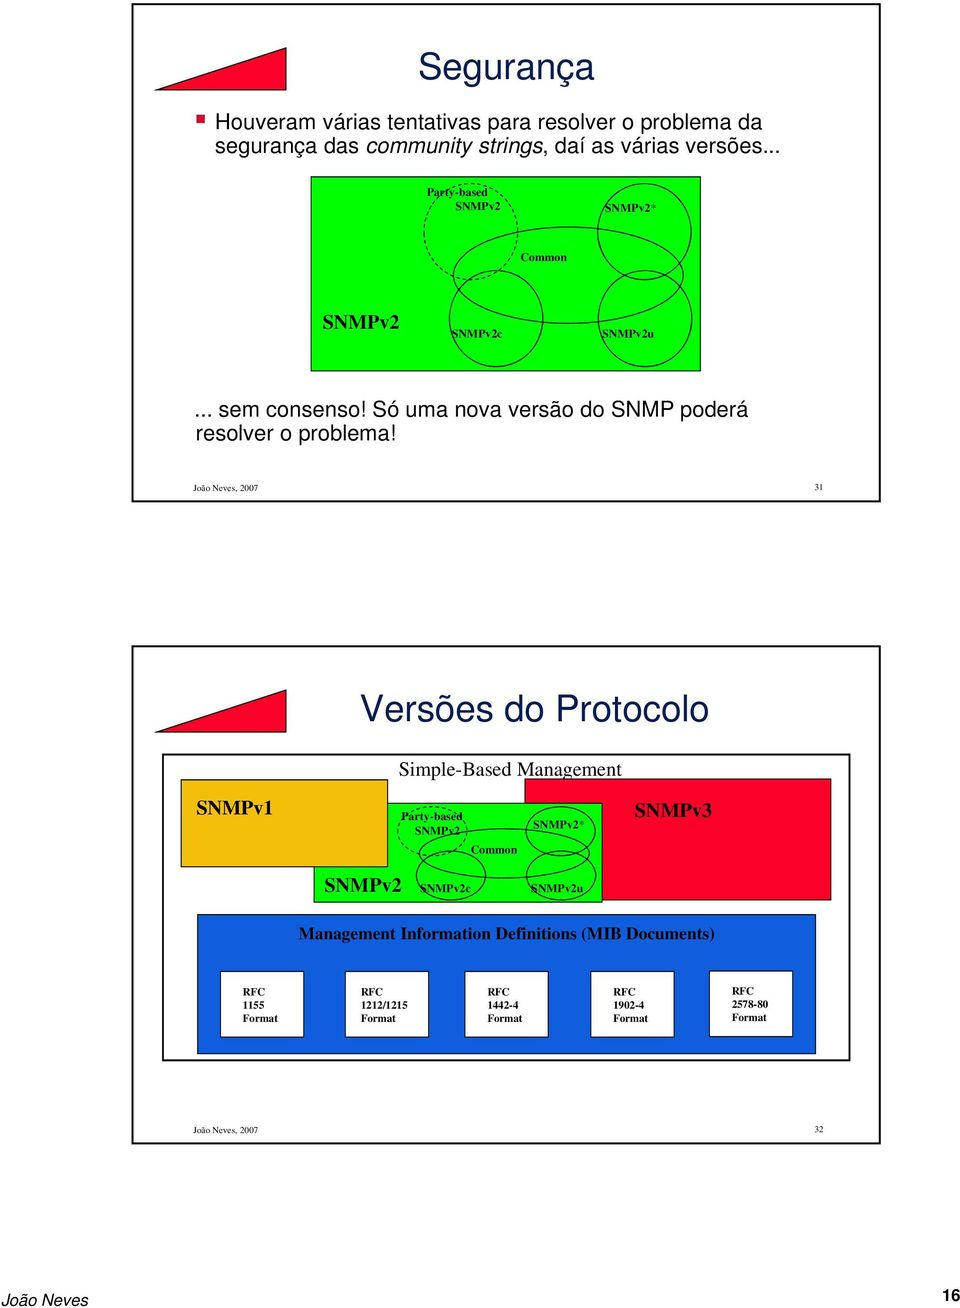 João Neves, 2007 31 Versões do Protocolo Simple-Based Management SNMPv1 Party-based Common * SNMPv3 c u Management